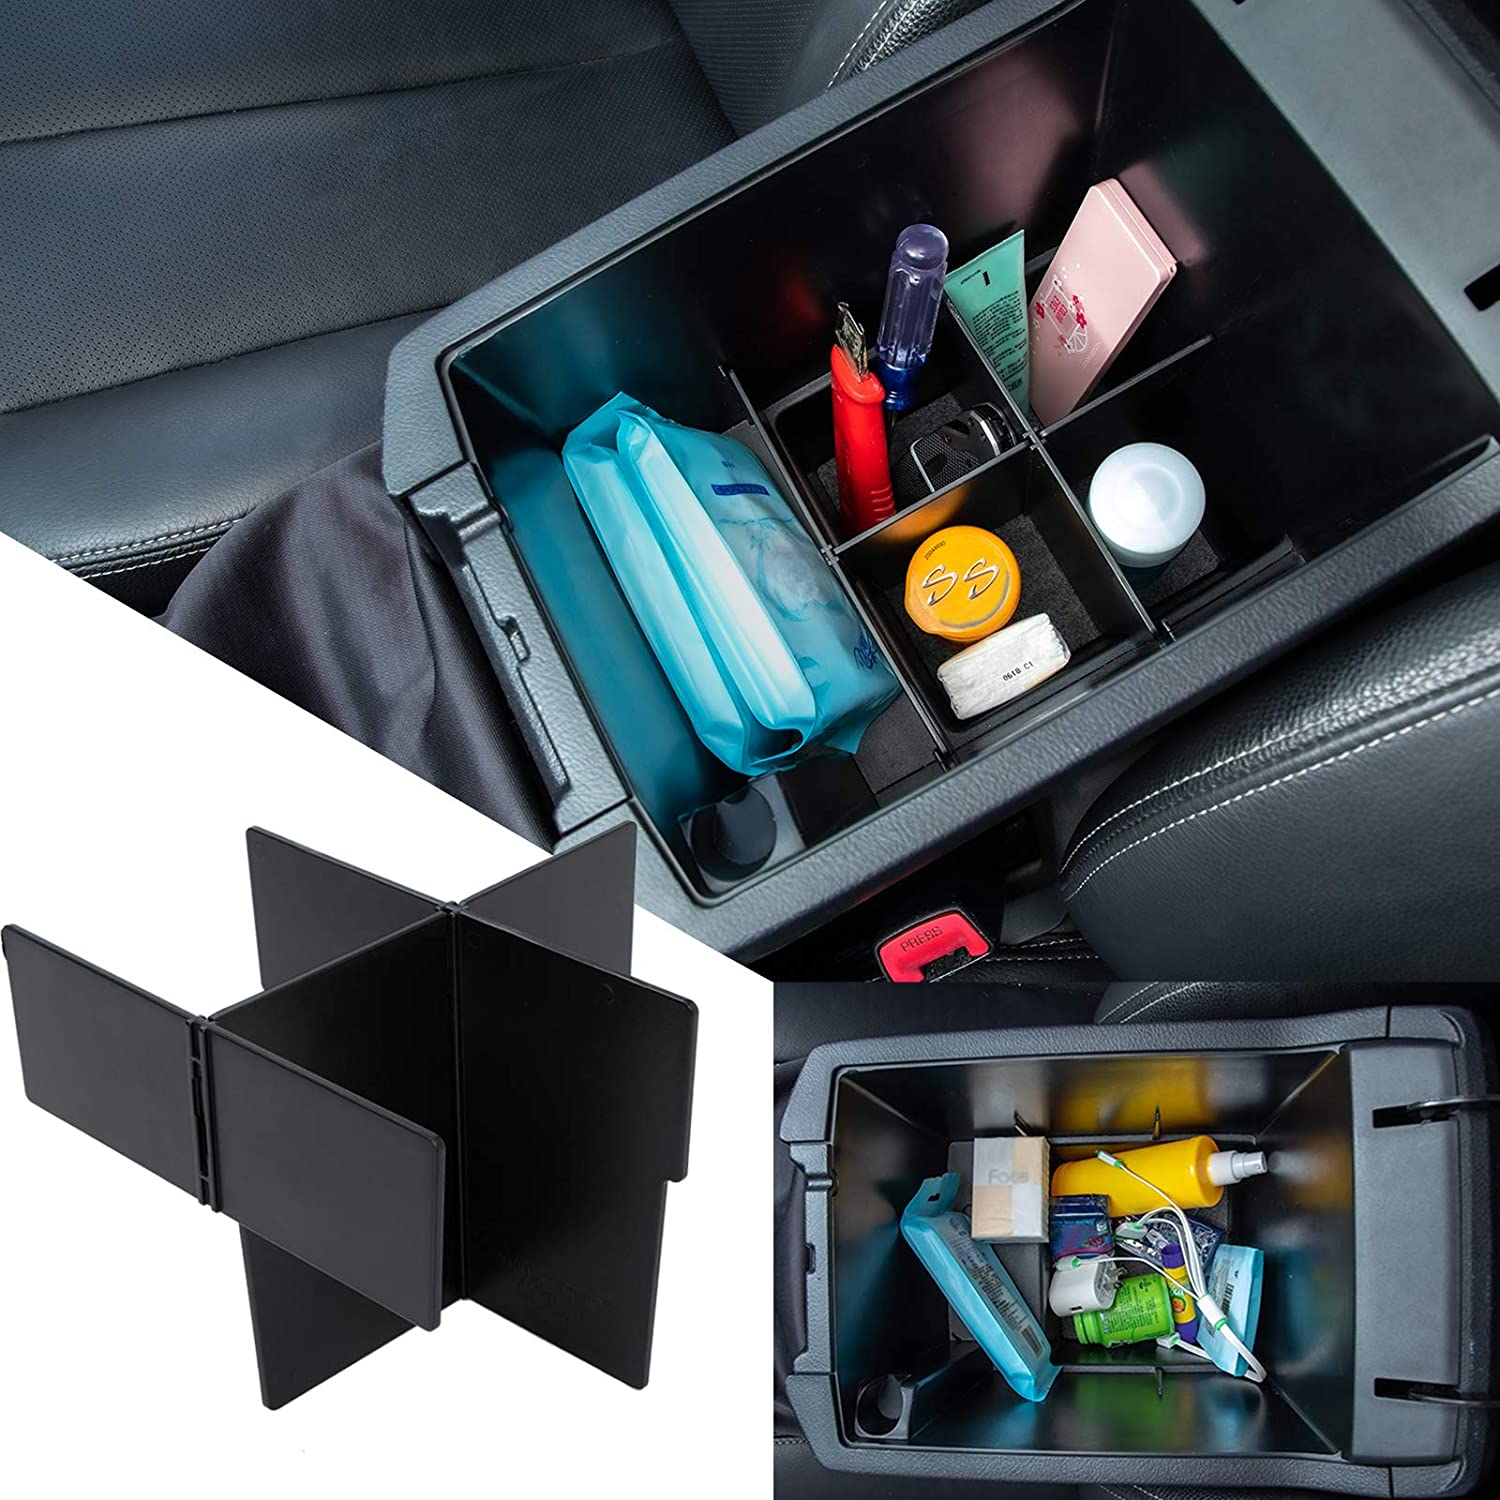 JDMCAR Center Console Organizer Compatible with Toyota 4Runner Accessories 2010-2020 2021, Insert ABS Black Materials Compartment Divider- Upgraded Version